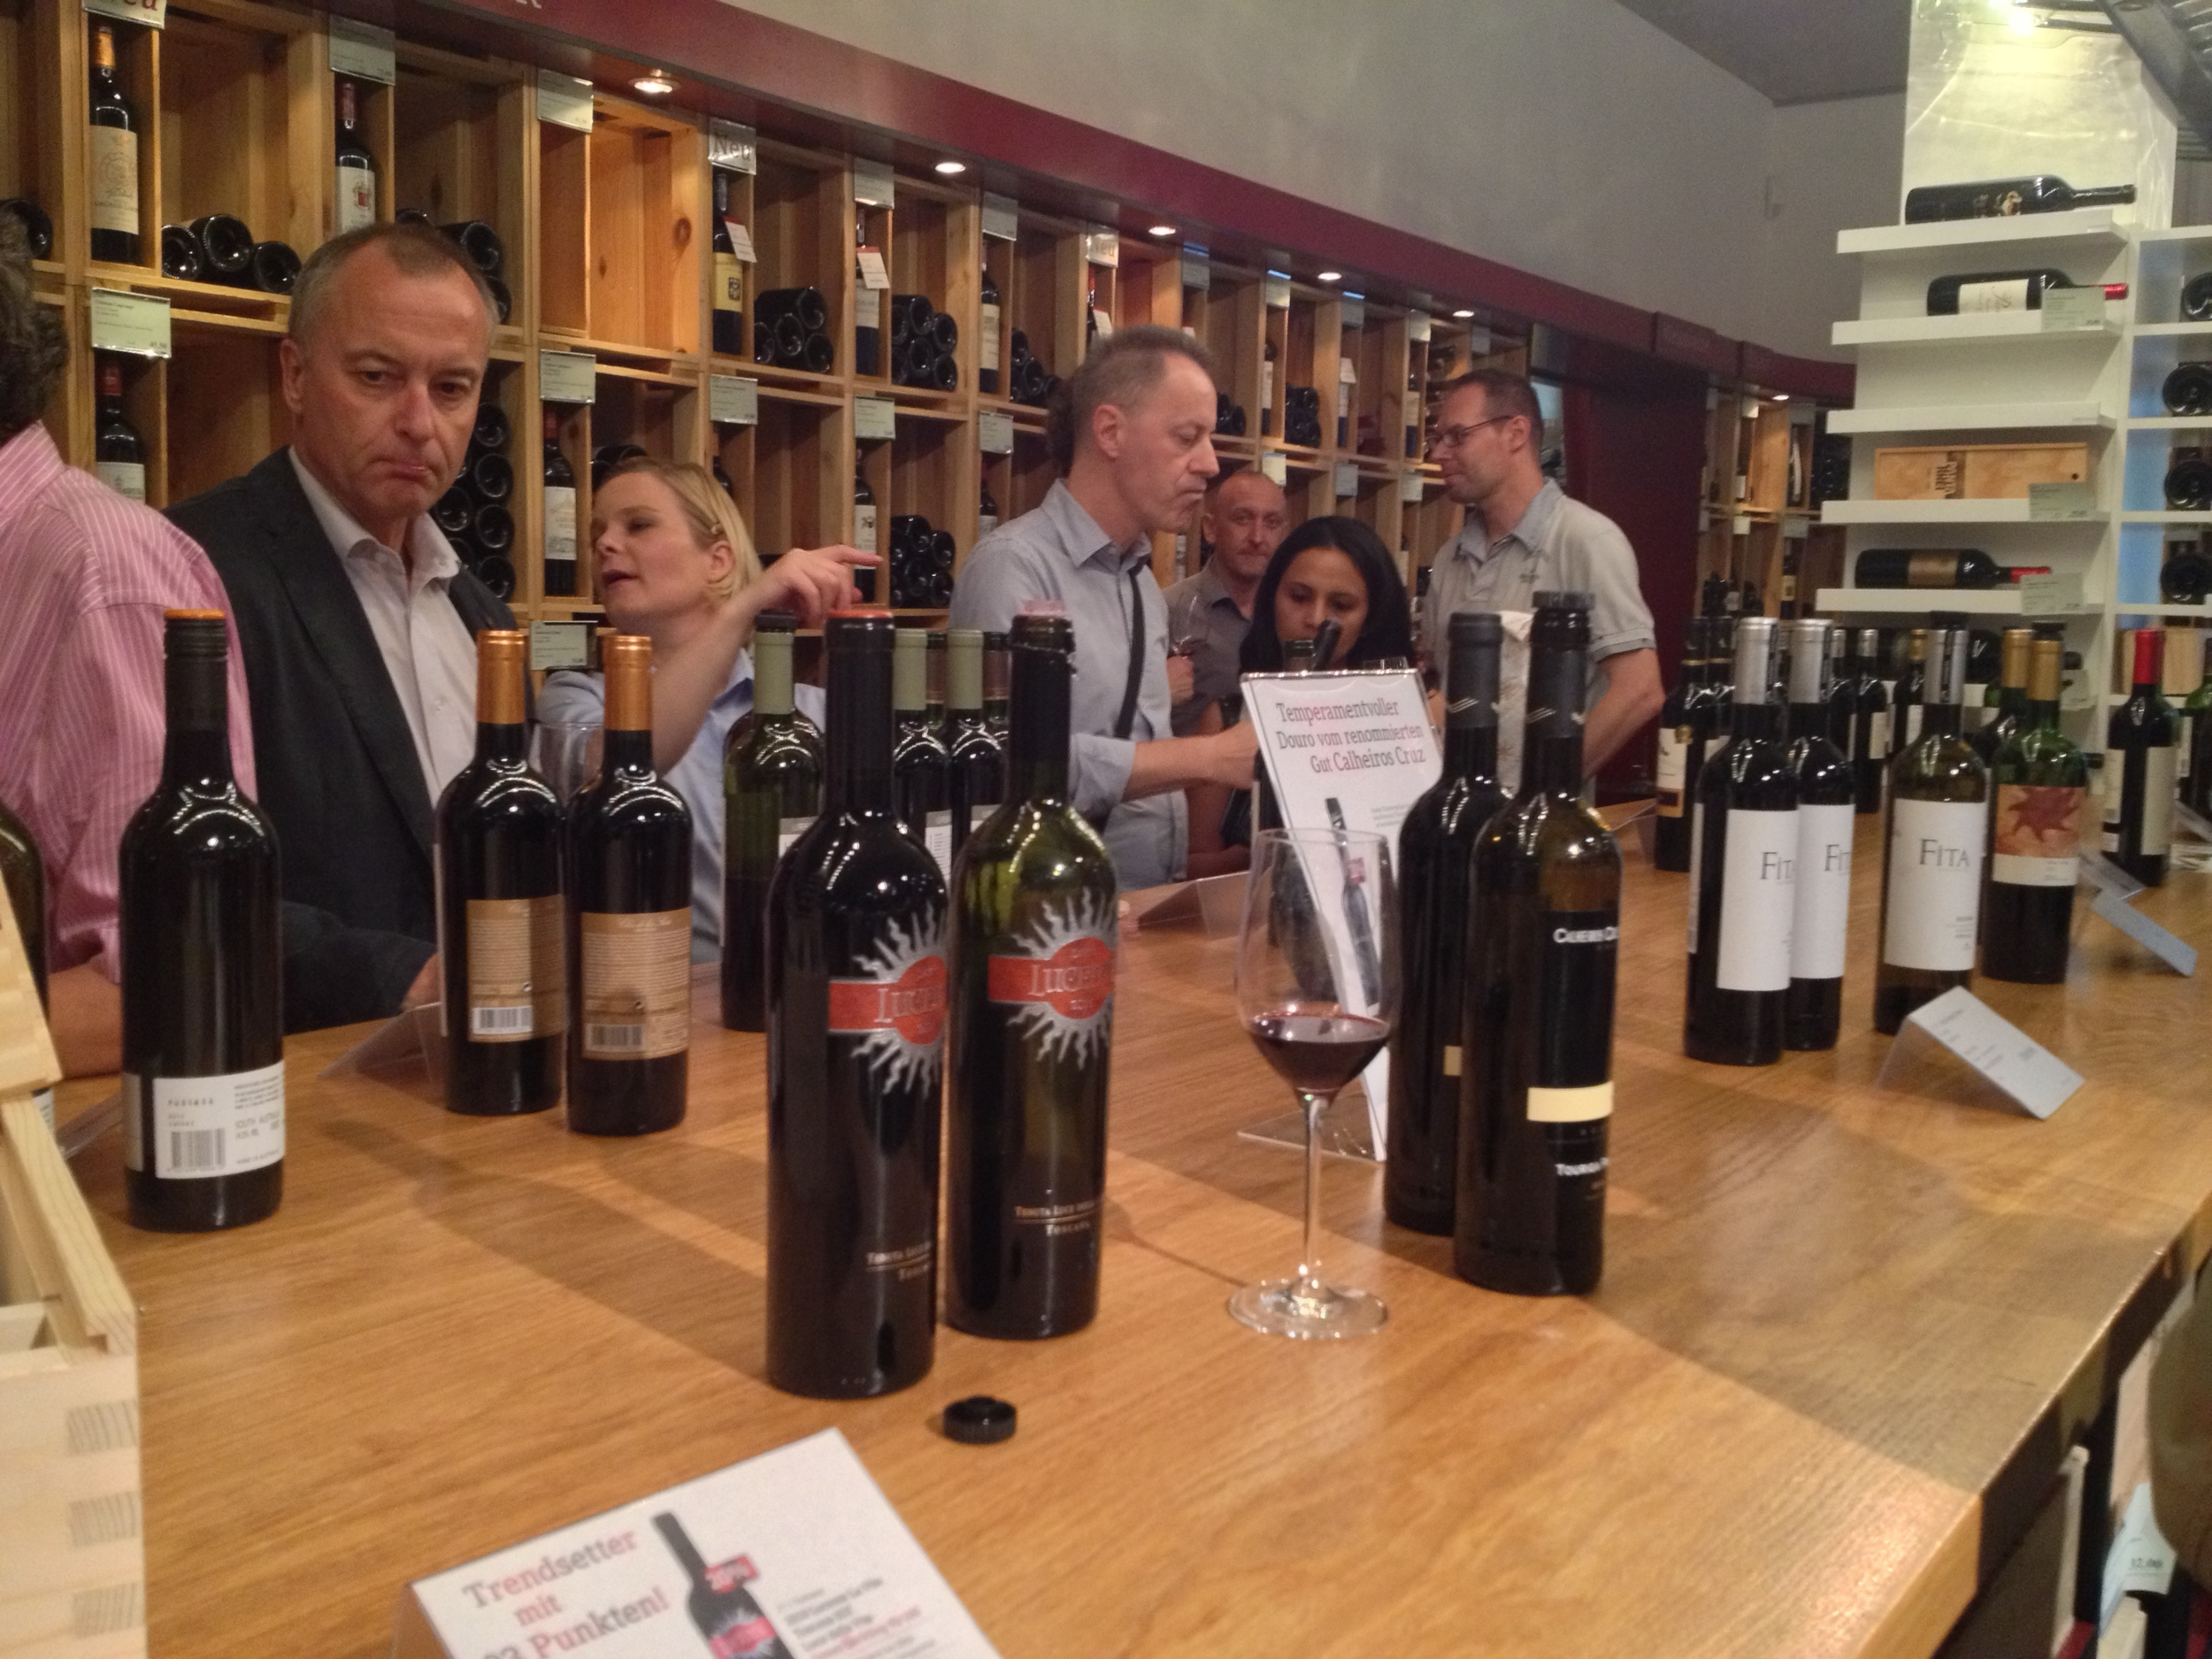 Tasting the reds